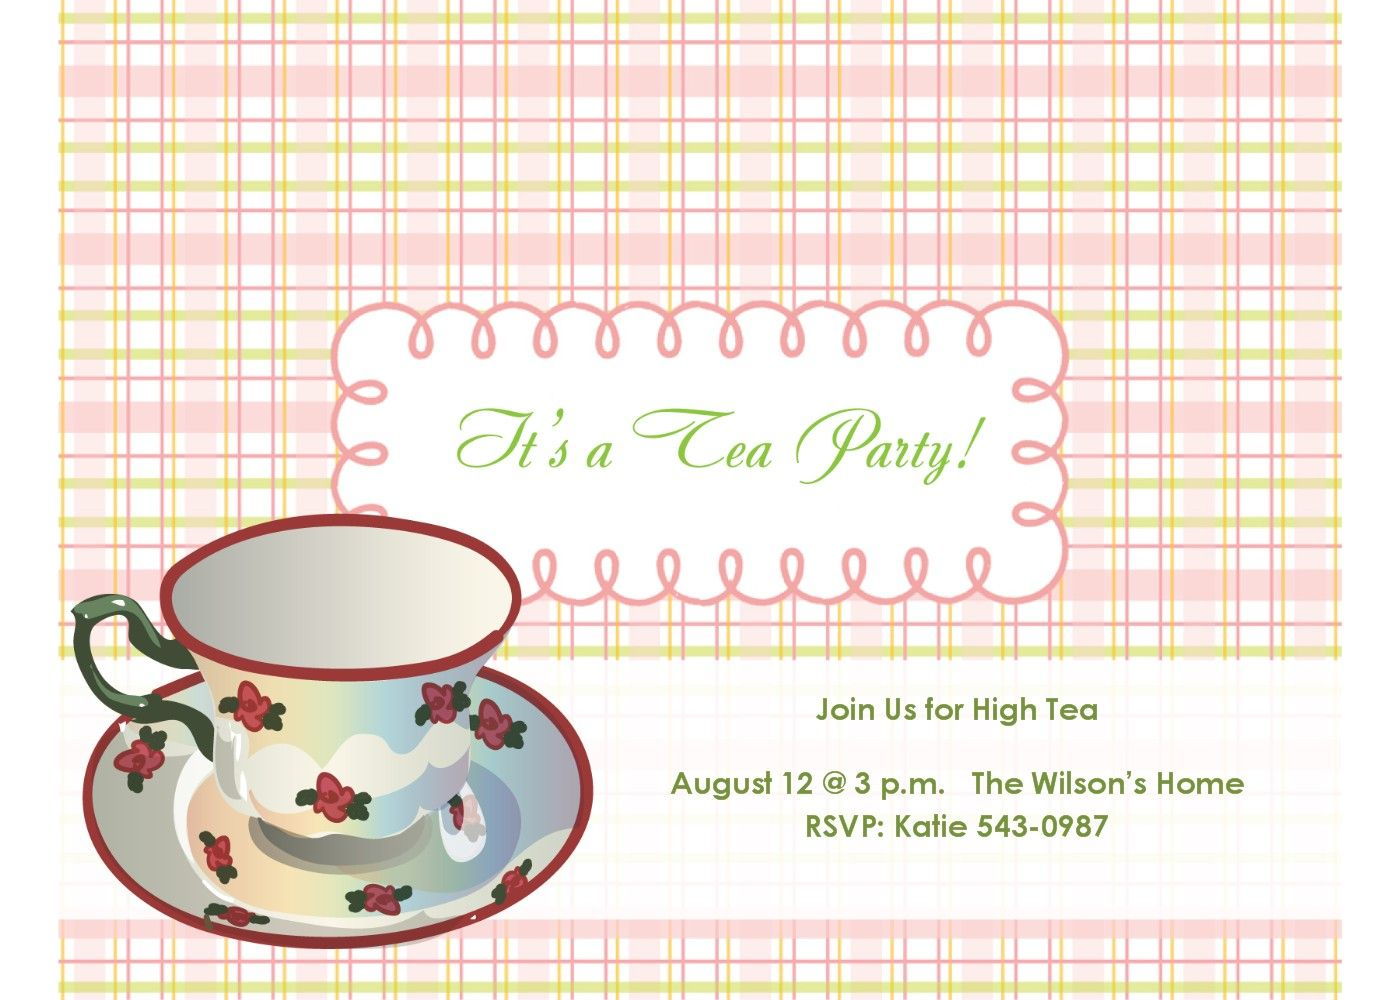 Invitations free tea party invitations free template invitations free tea party invitations free template monicamarmolfo Image collections